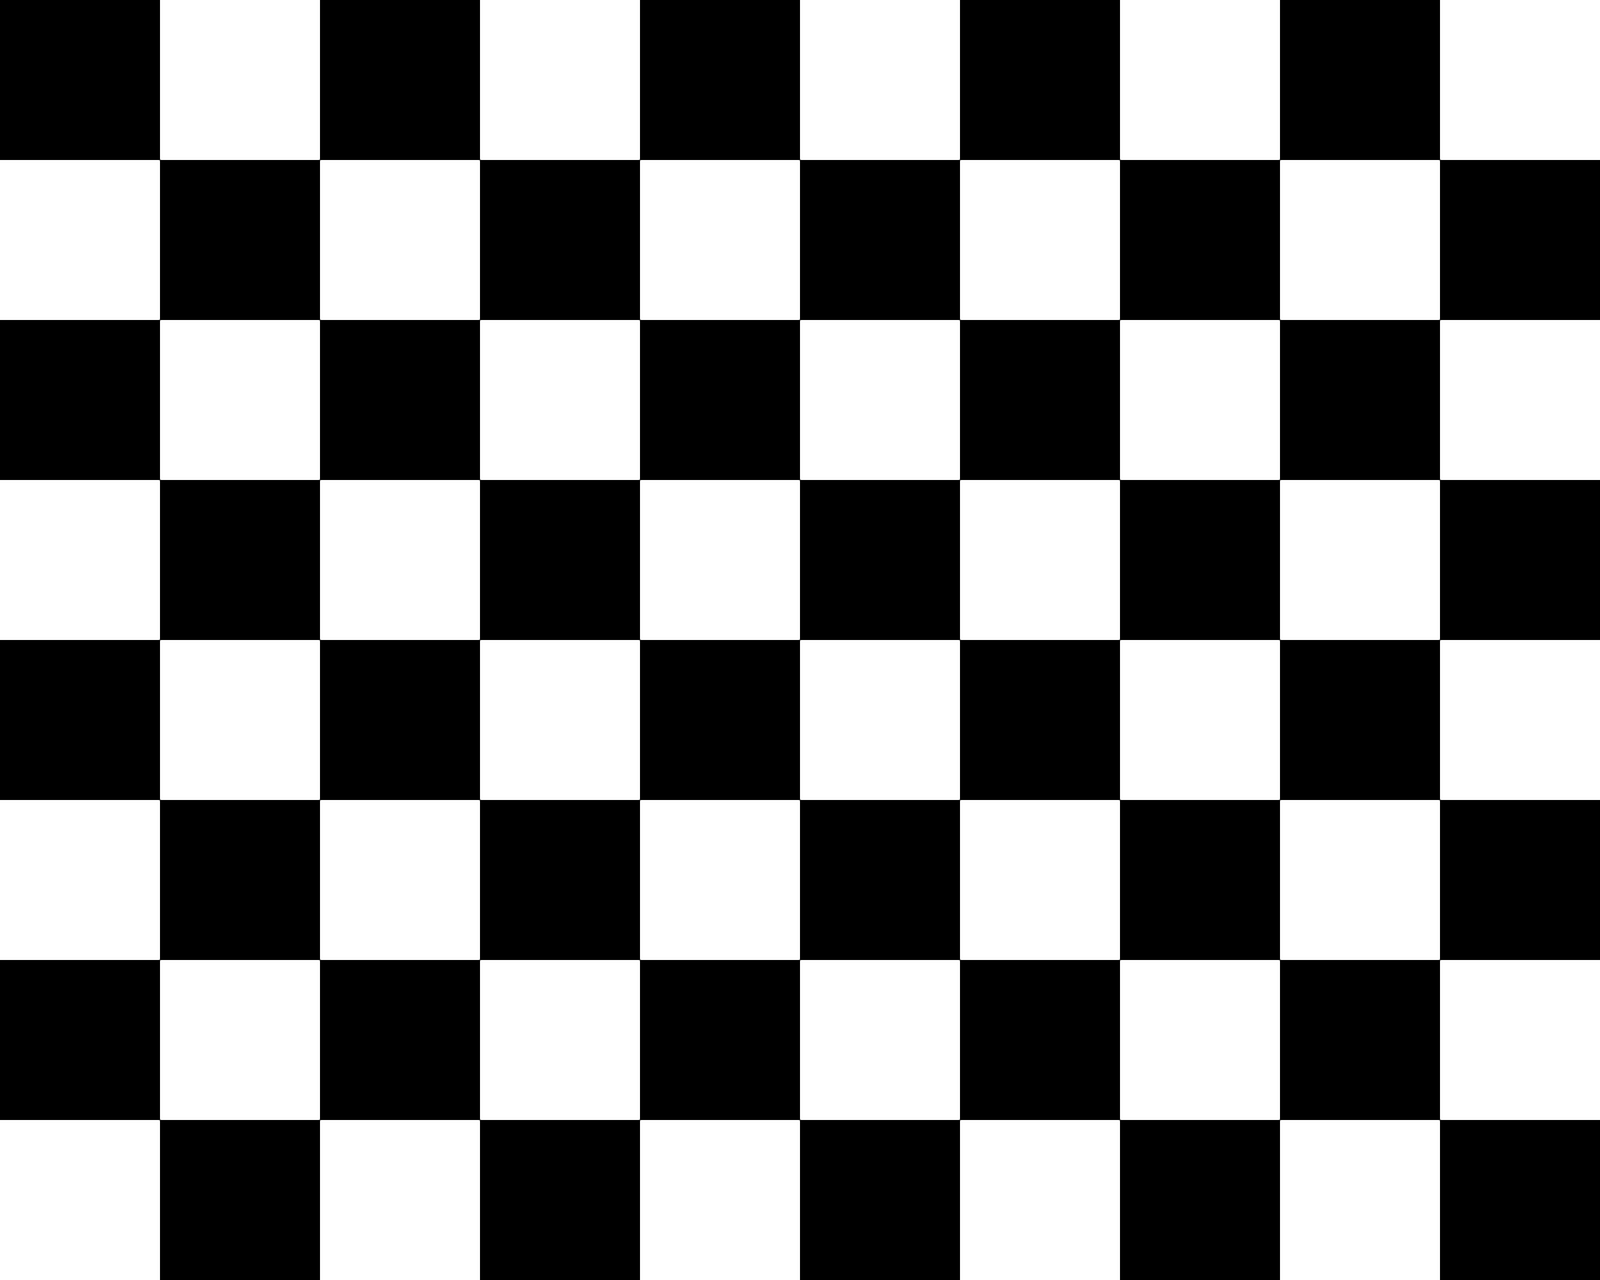 black and white block flat checkered flag background #4866